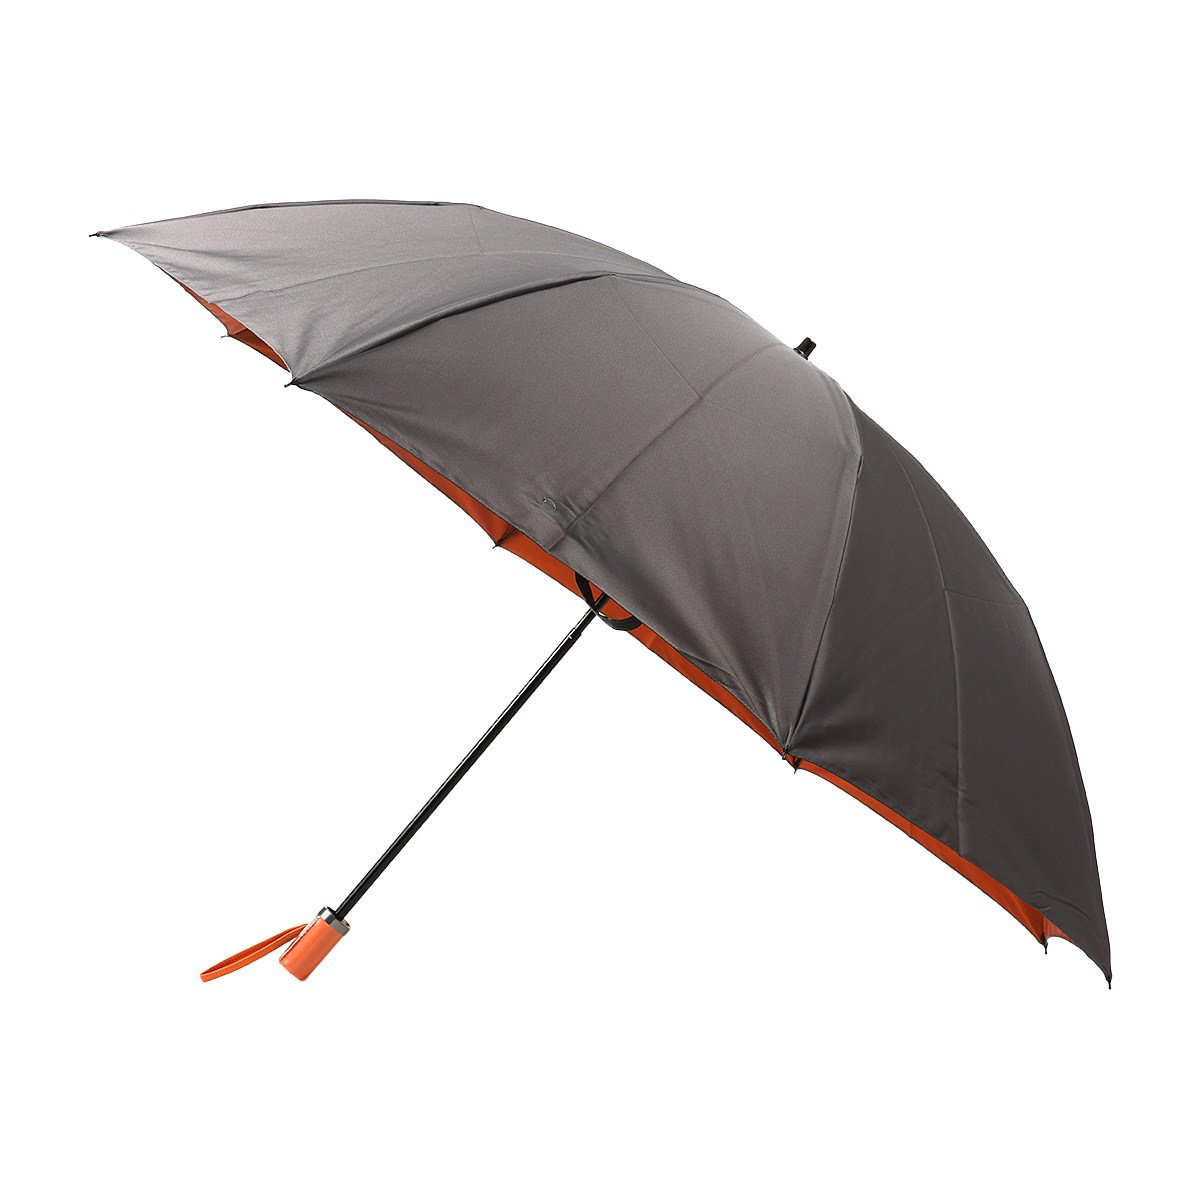 608K SOLID FOLDING UMBRELLA 詳細画像4